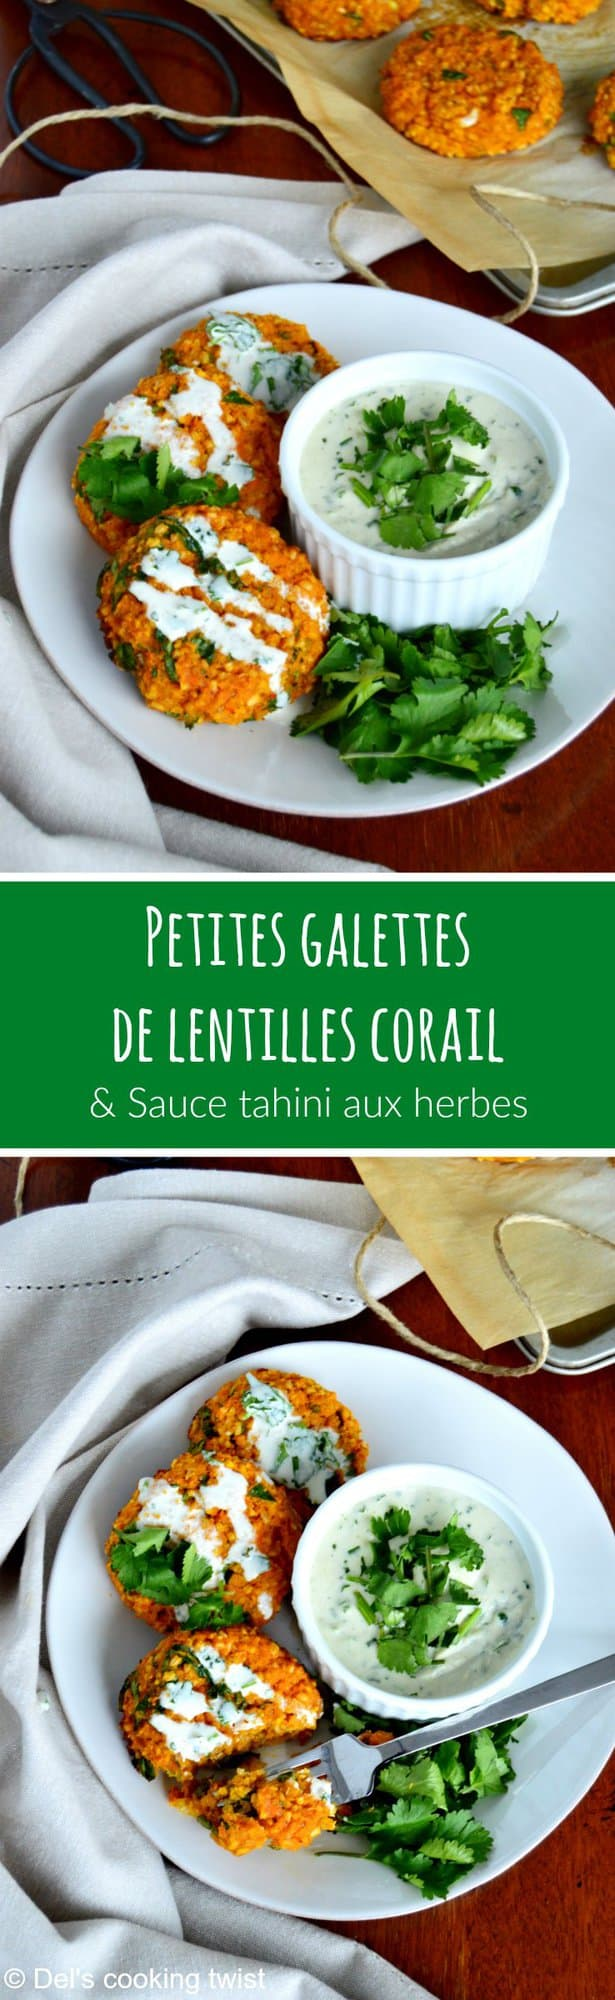 galettes de lentilles corail et sauce tahini aux herbes vegan sans gluten del 39 s cooking twist. Black Bedroom Furniture Sets. Home Design Ideas